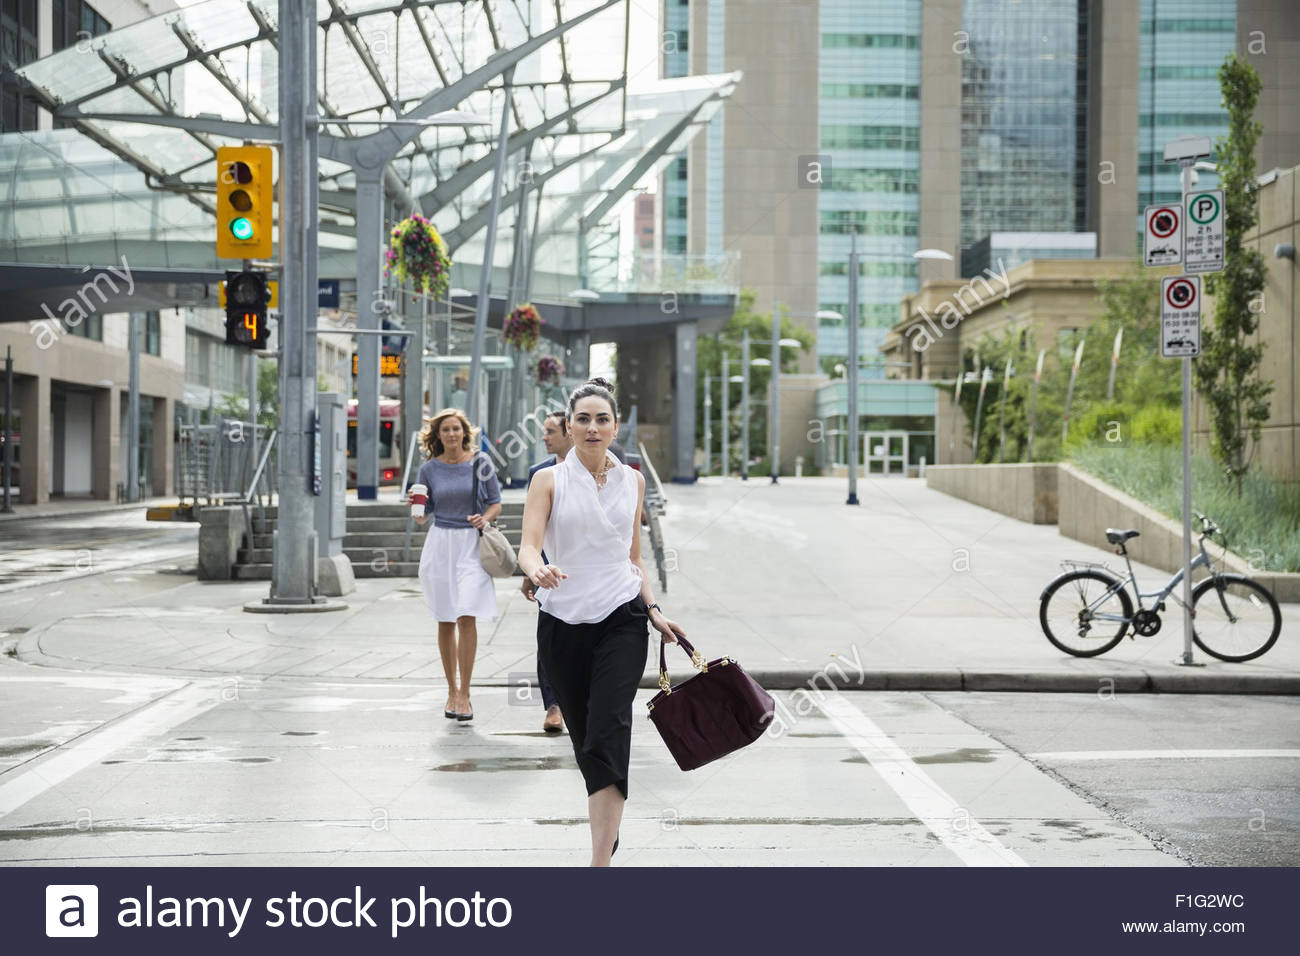 Businesswoman rushing in crosswalk in urban street - Stock Image